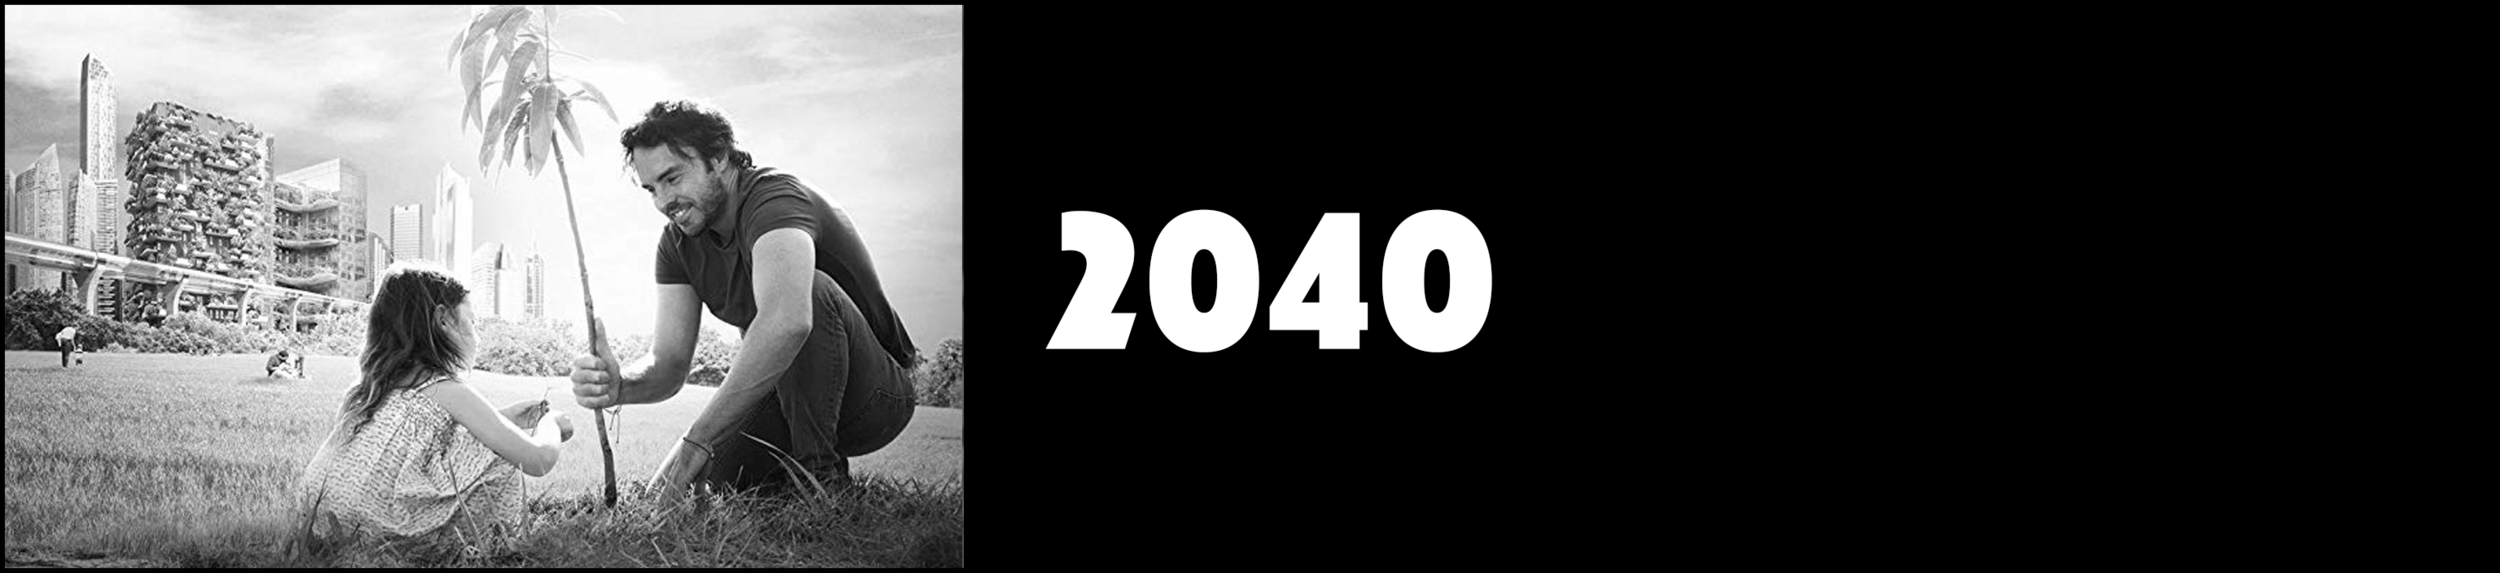 2040.png